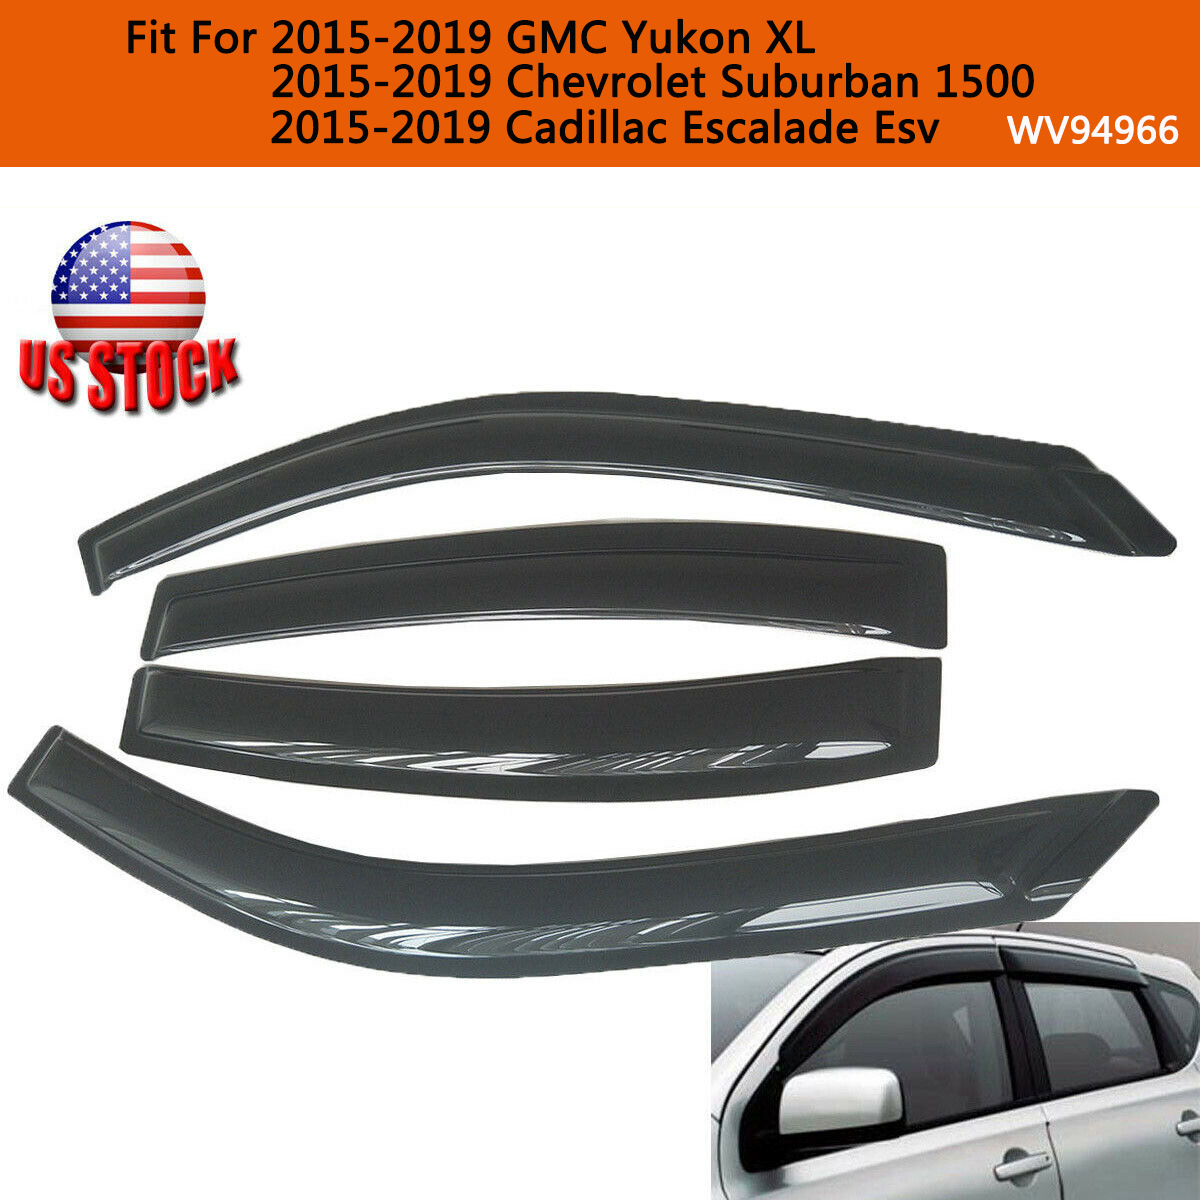 Window Visor Rain Guards For Chevy Suburban Cadillac